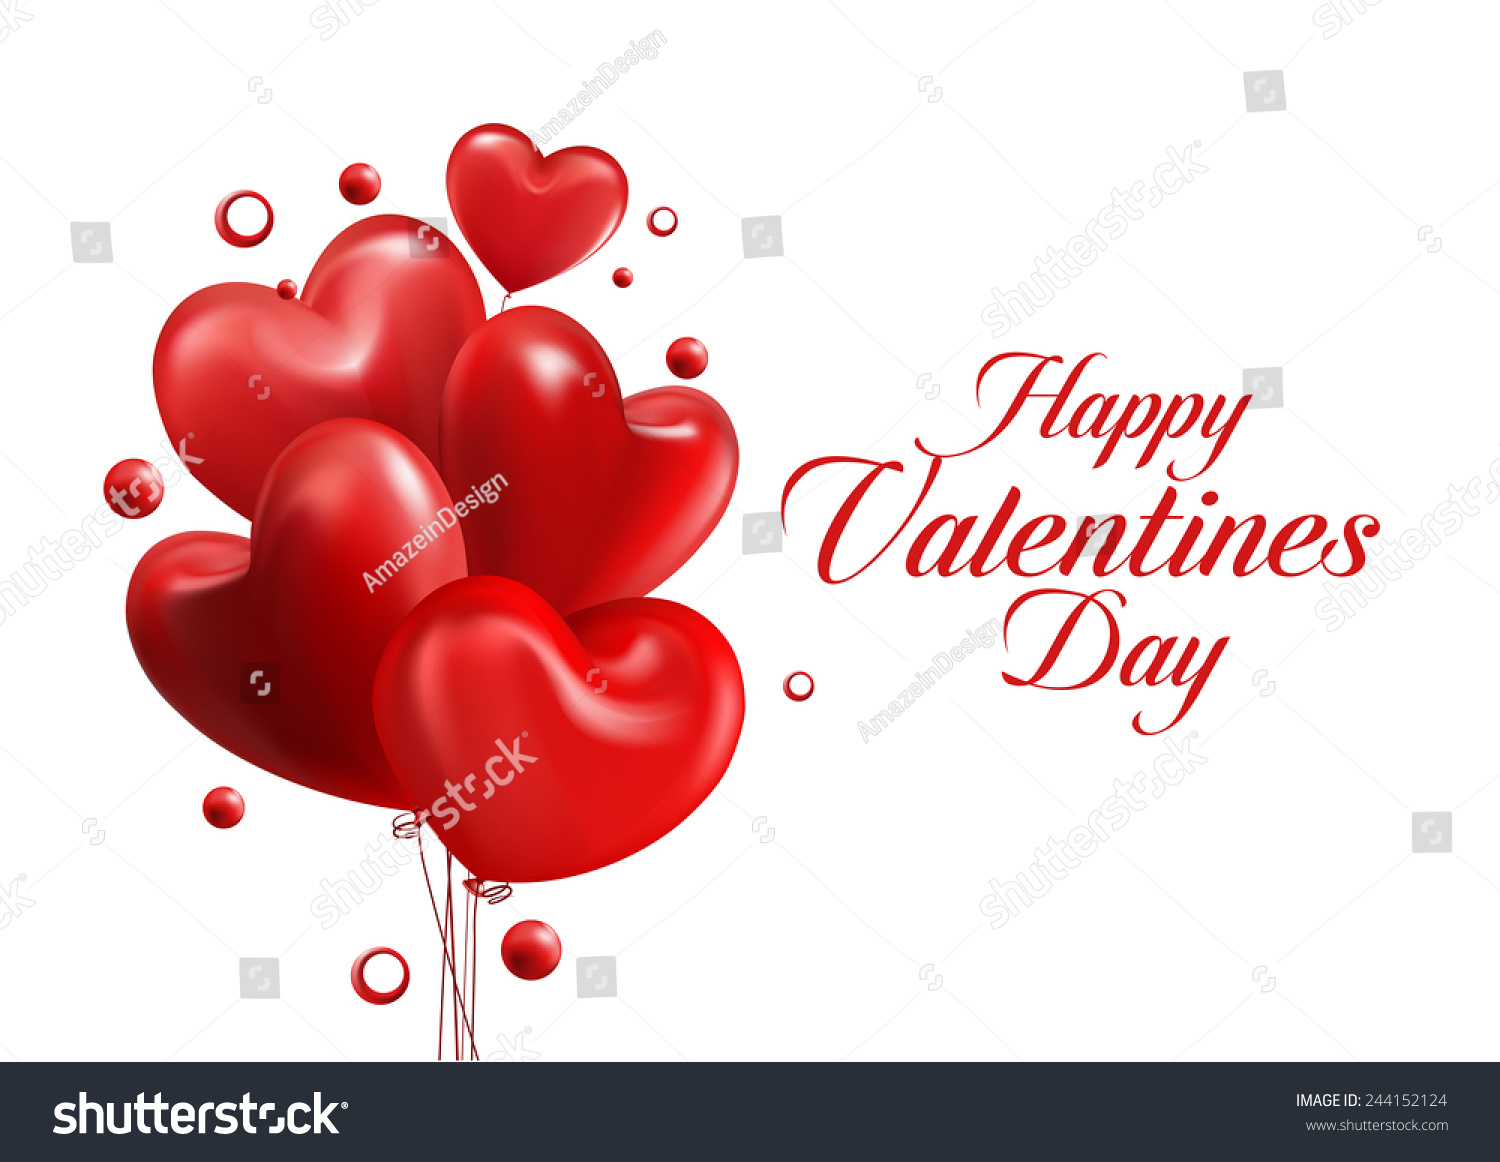 valentines day red sweet balloon hearts stock vector 244152124